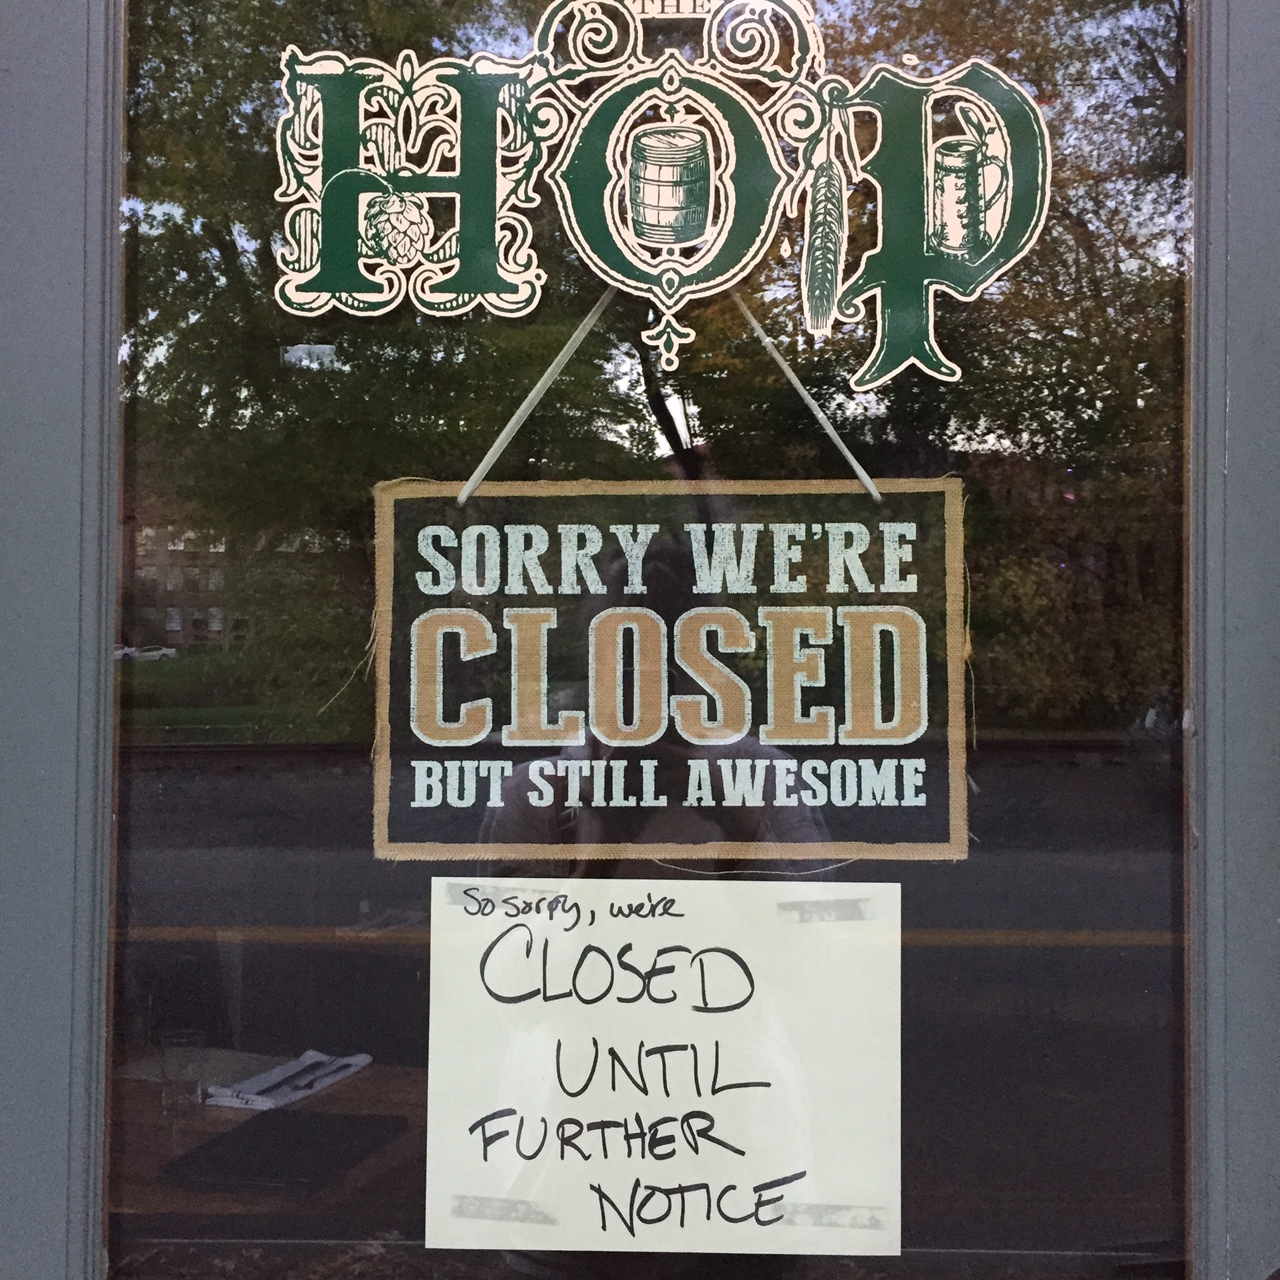 Confirmation is always required at the physical storefront. Still, the verbiage used indicates a notice to come in the future about it not being closed.